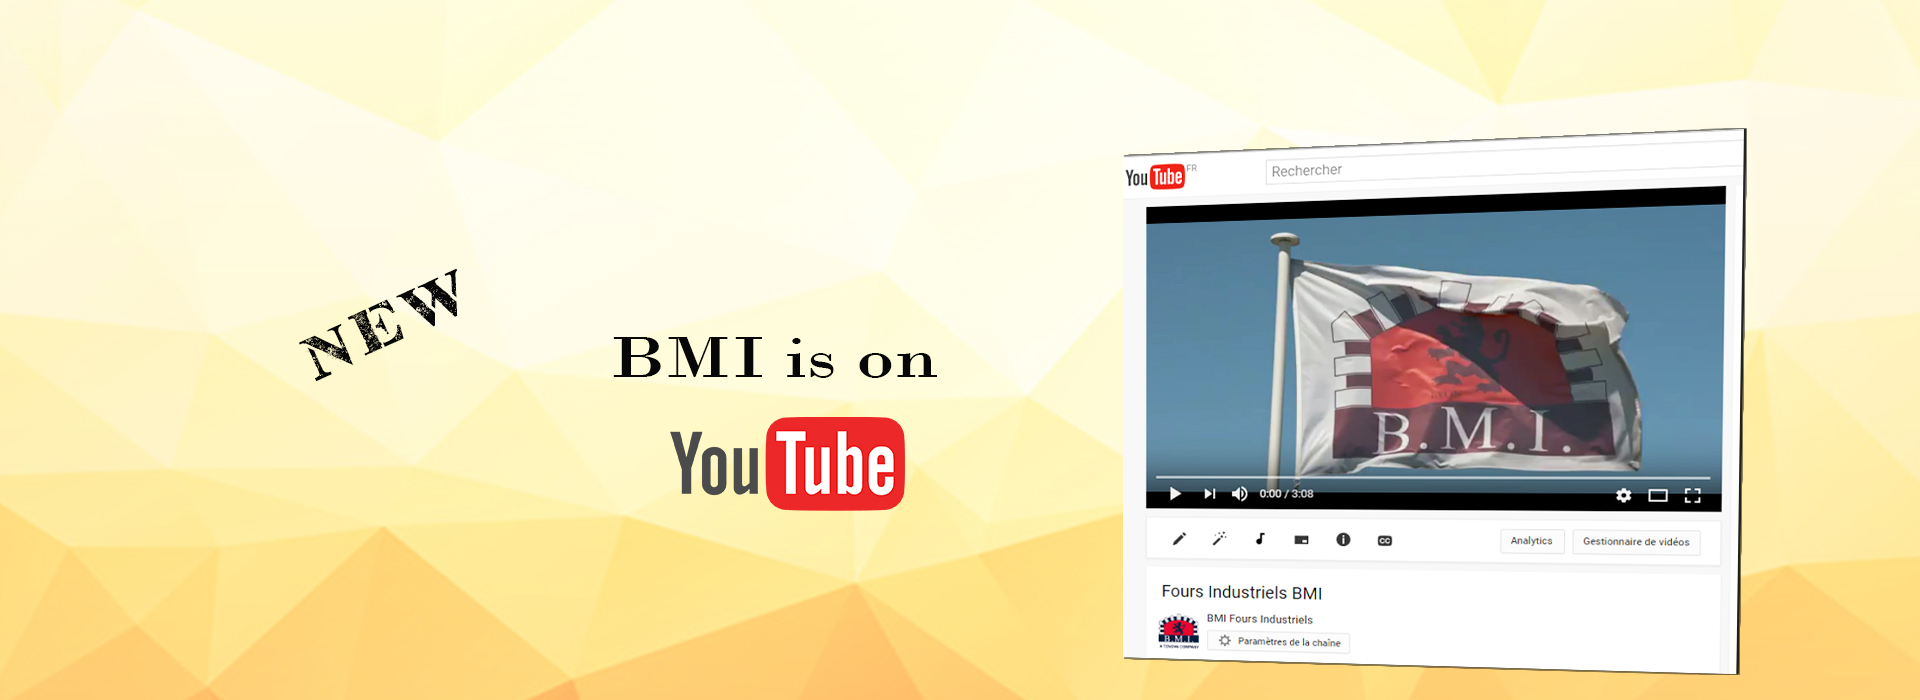 BMI on video